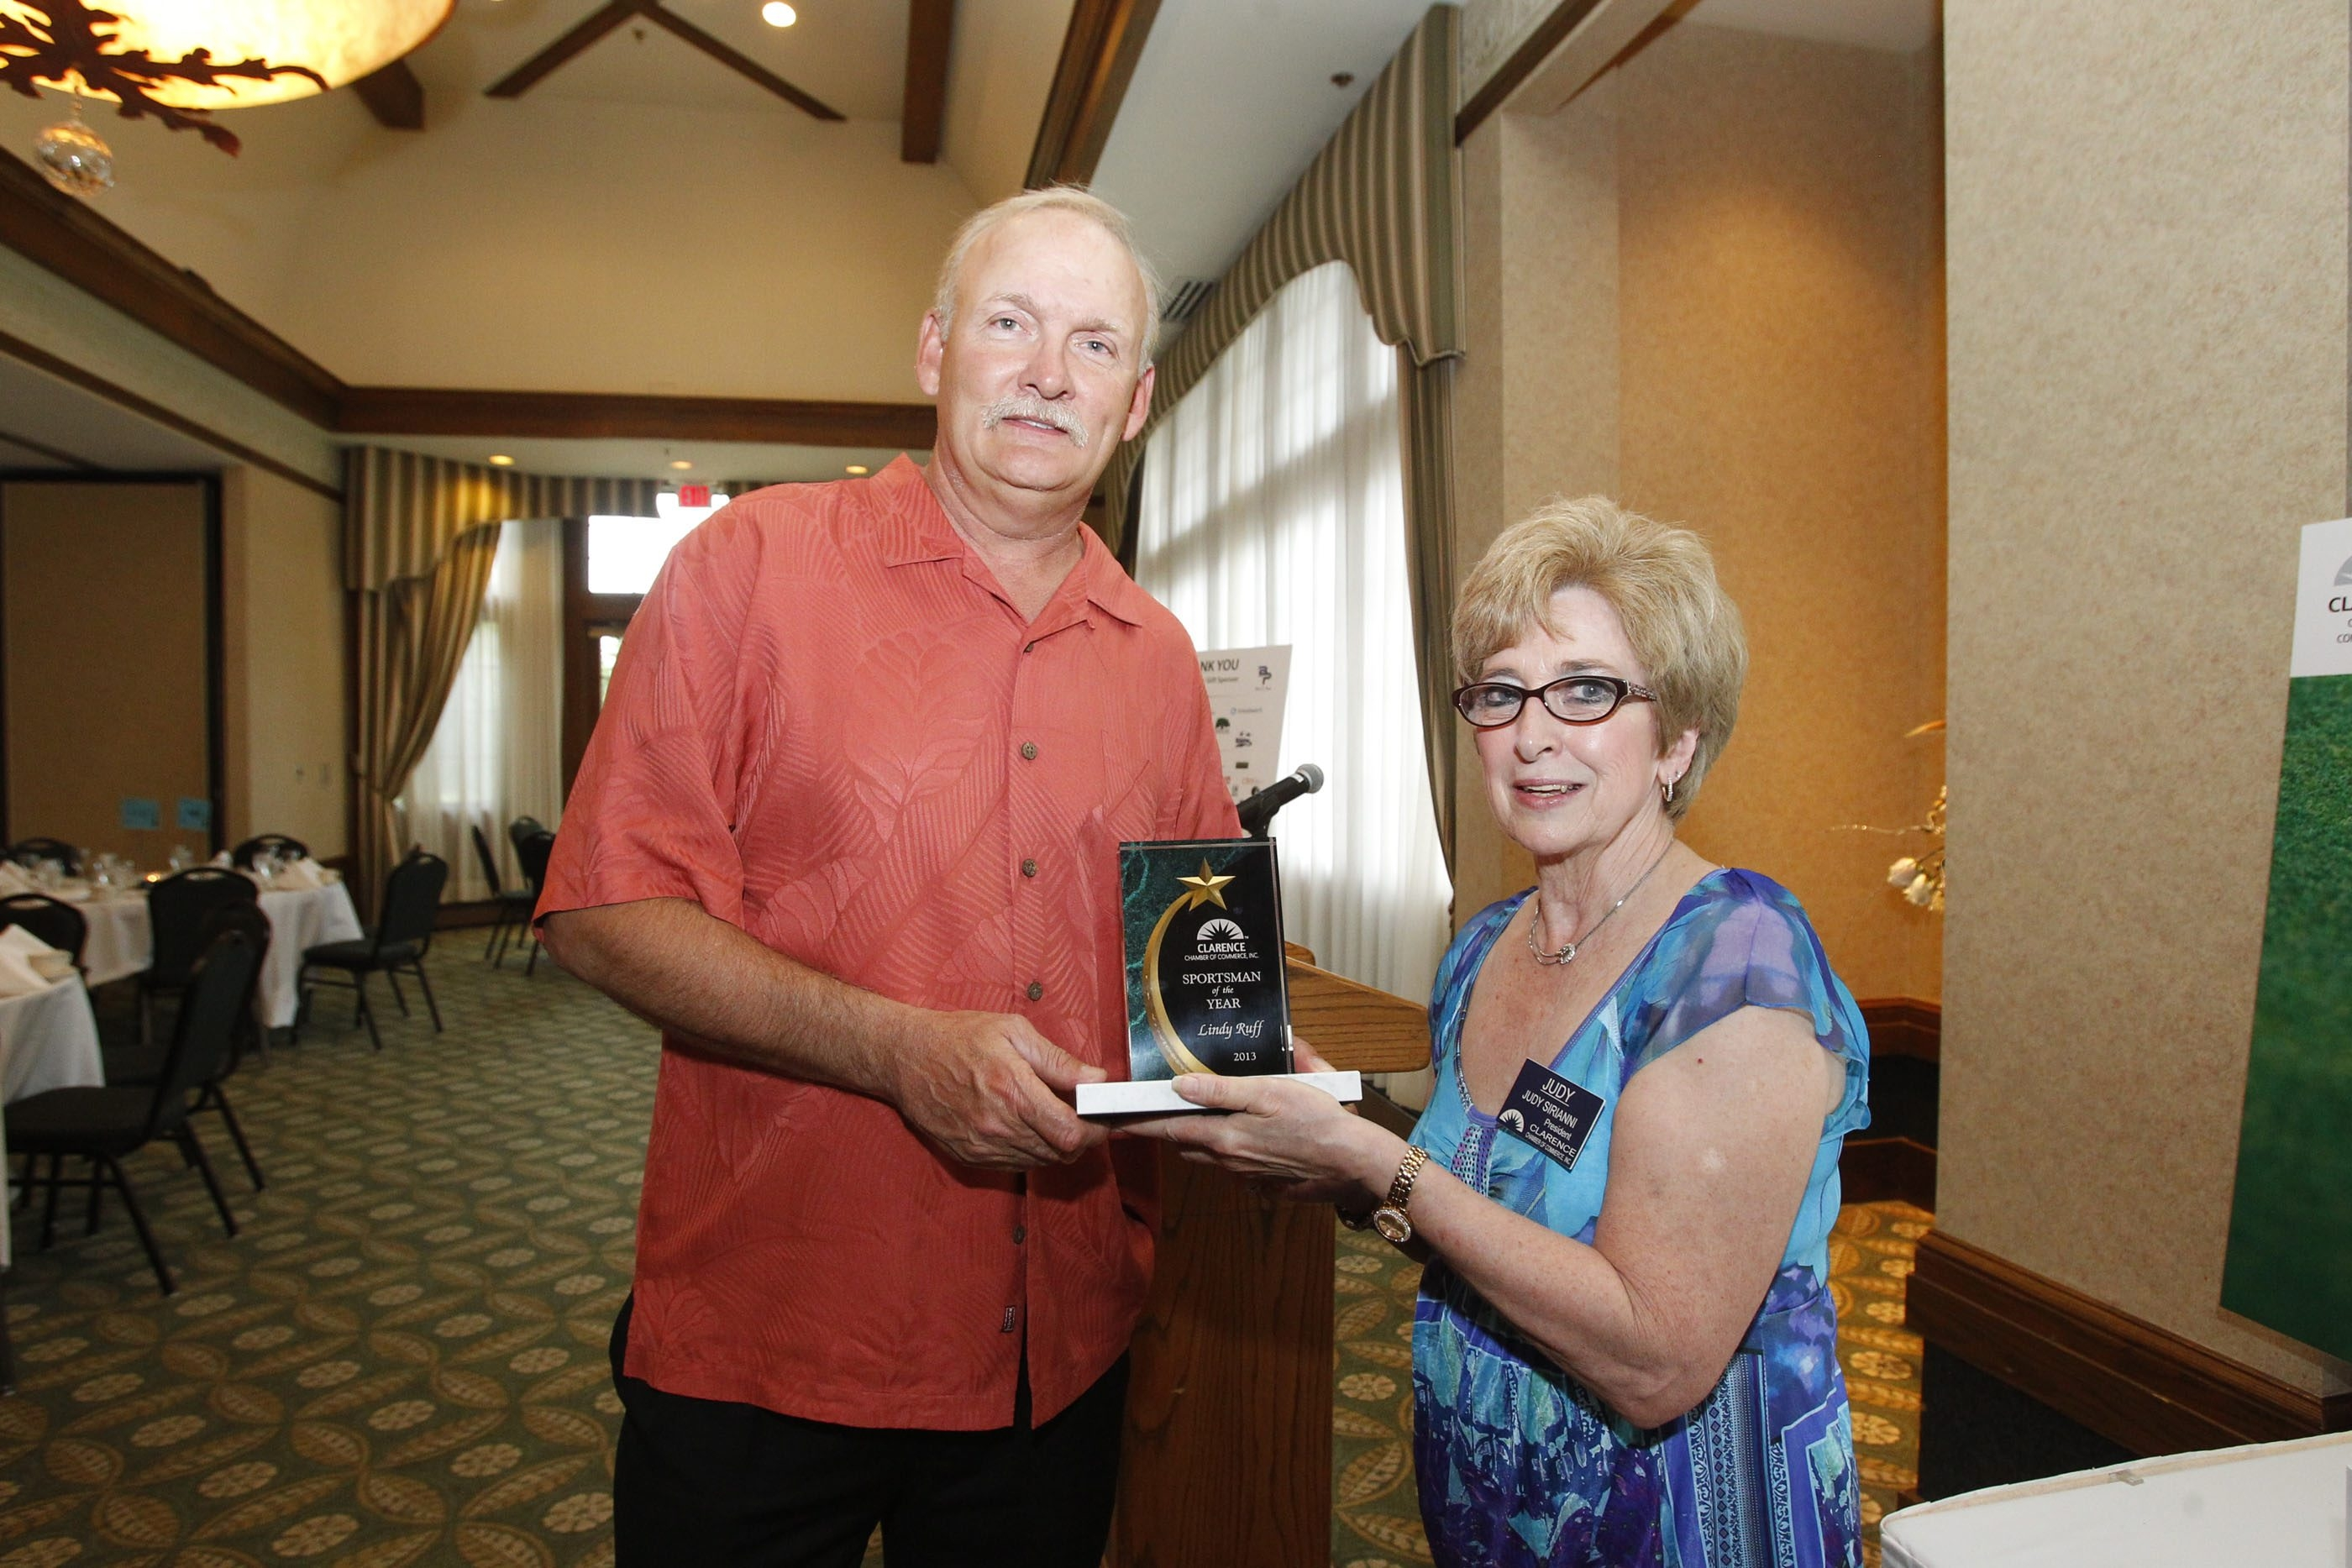 Ex-Buffalo Sabres coach Lindy Ruff receives the inaugural Clarence Sportsman of the Year Award from Judy Sirianni, the president of the Clarence Chamber of Commerce, at Westwood Country Club on Monday.